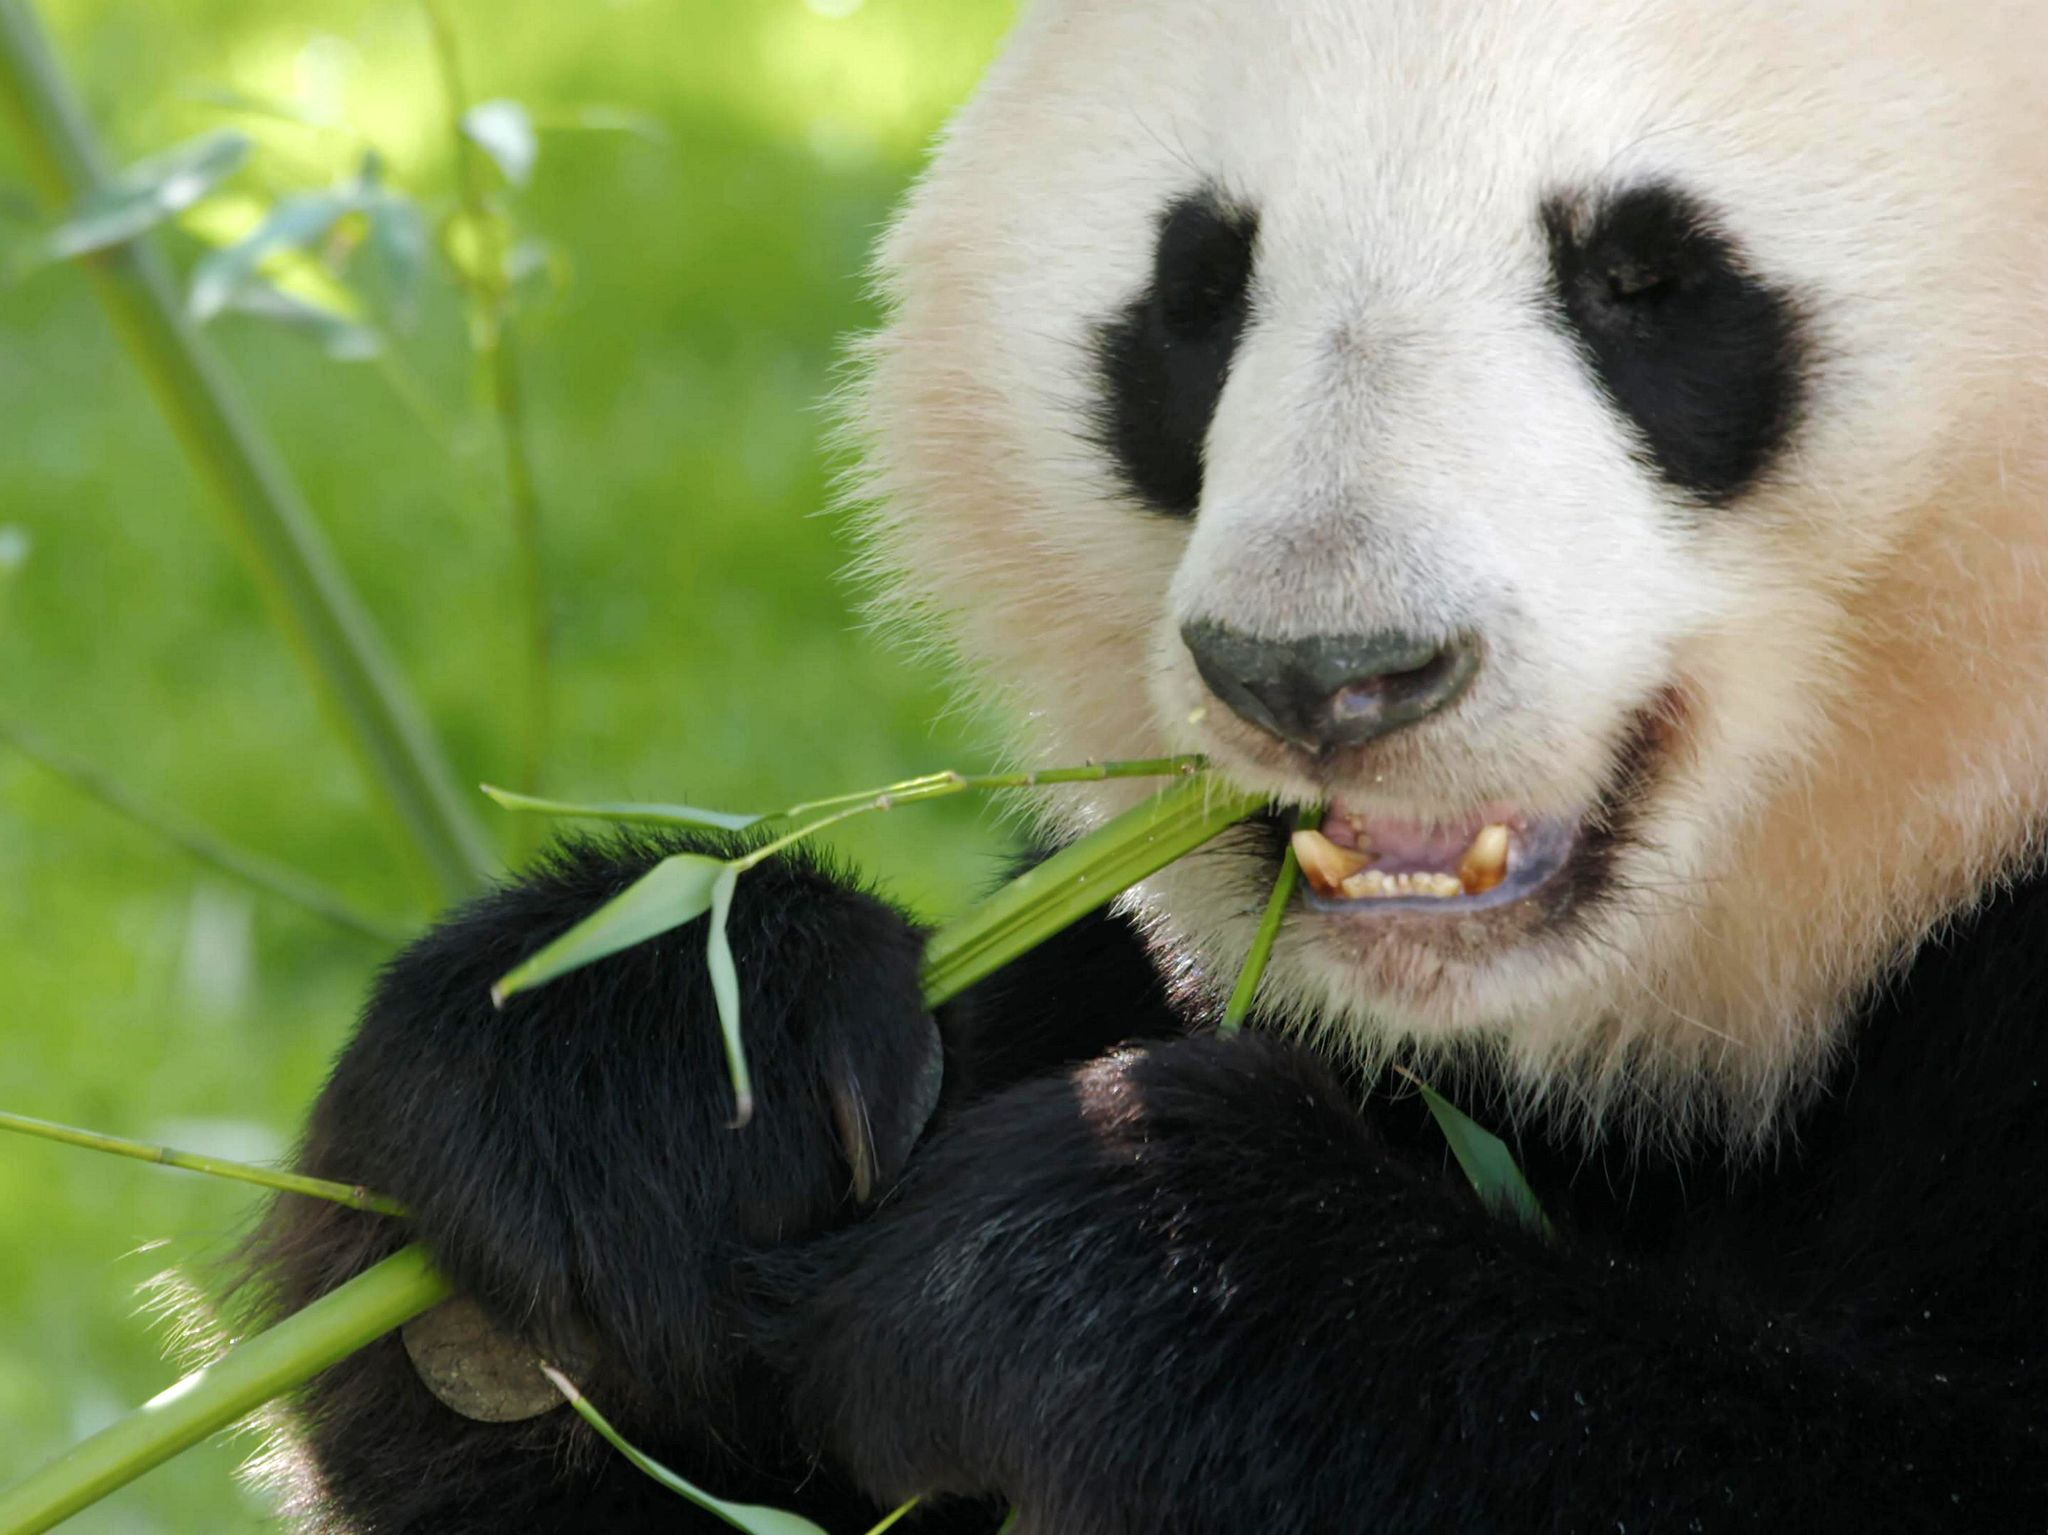 A closeup of a giant panda munching on some bamboo. This image is from Wild Hunters. [Photo of the day - May 2019]